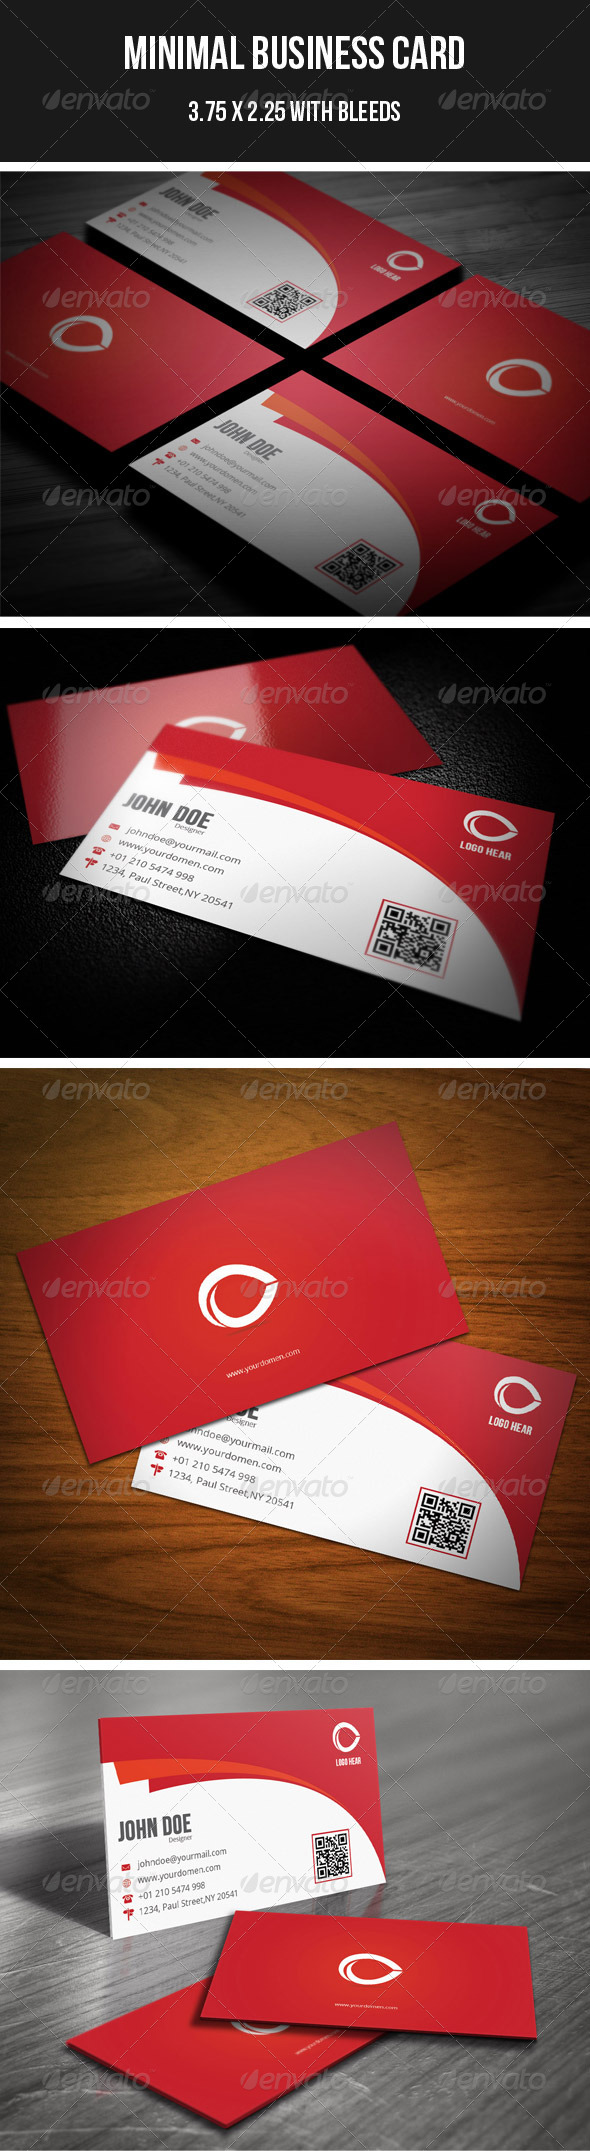 GraphicRiver Minimal Business Card 12 4313383